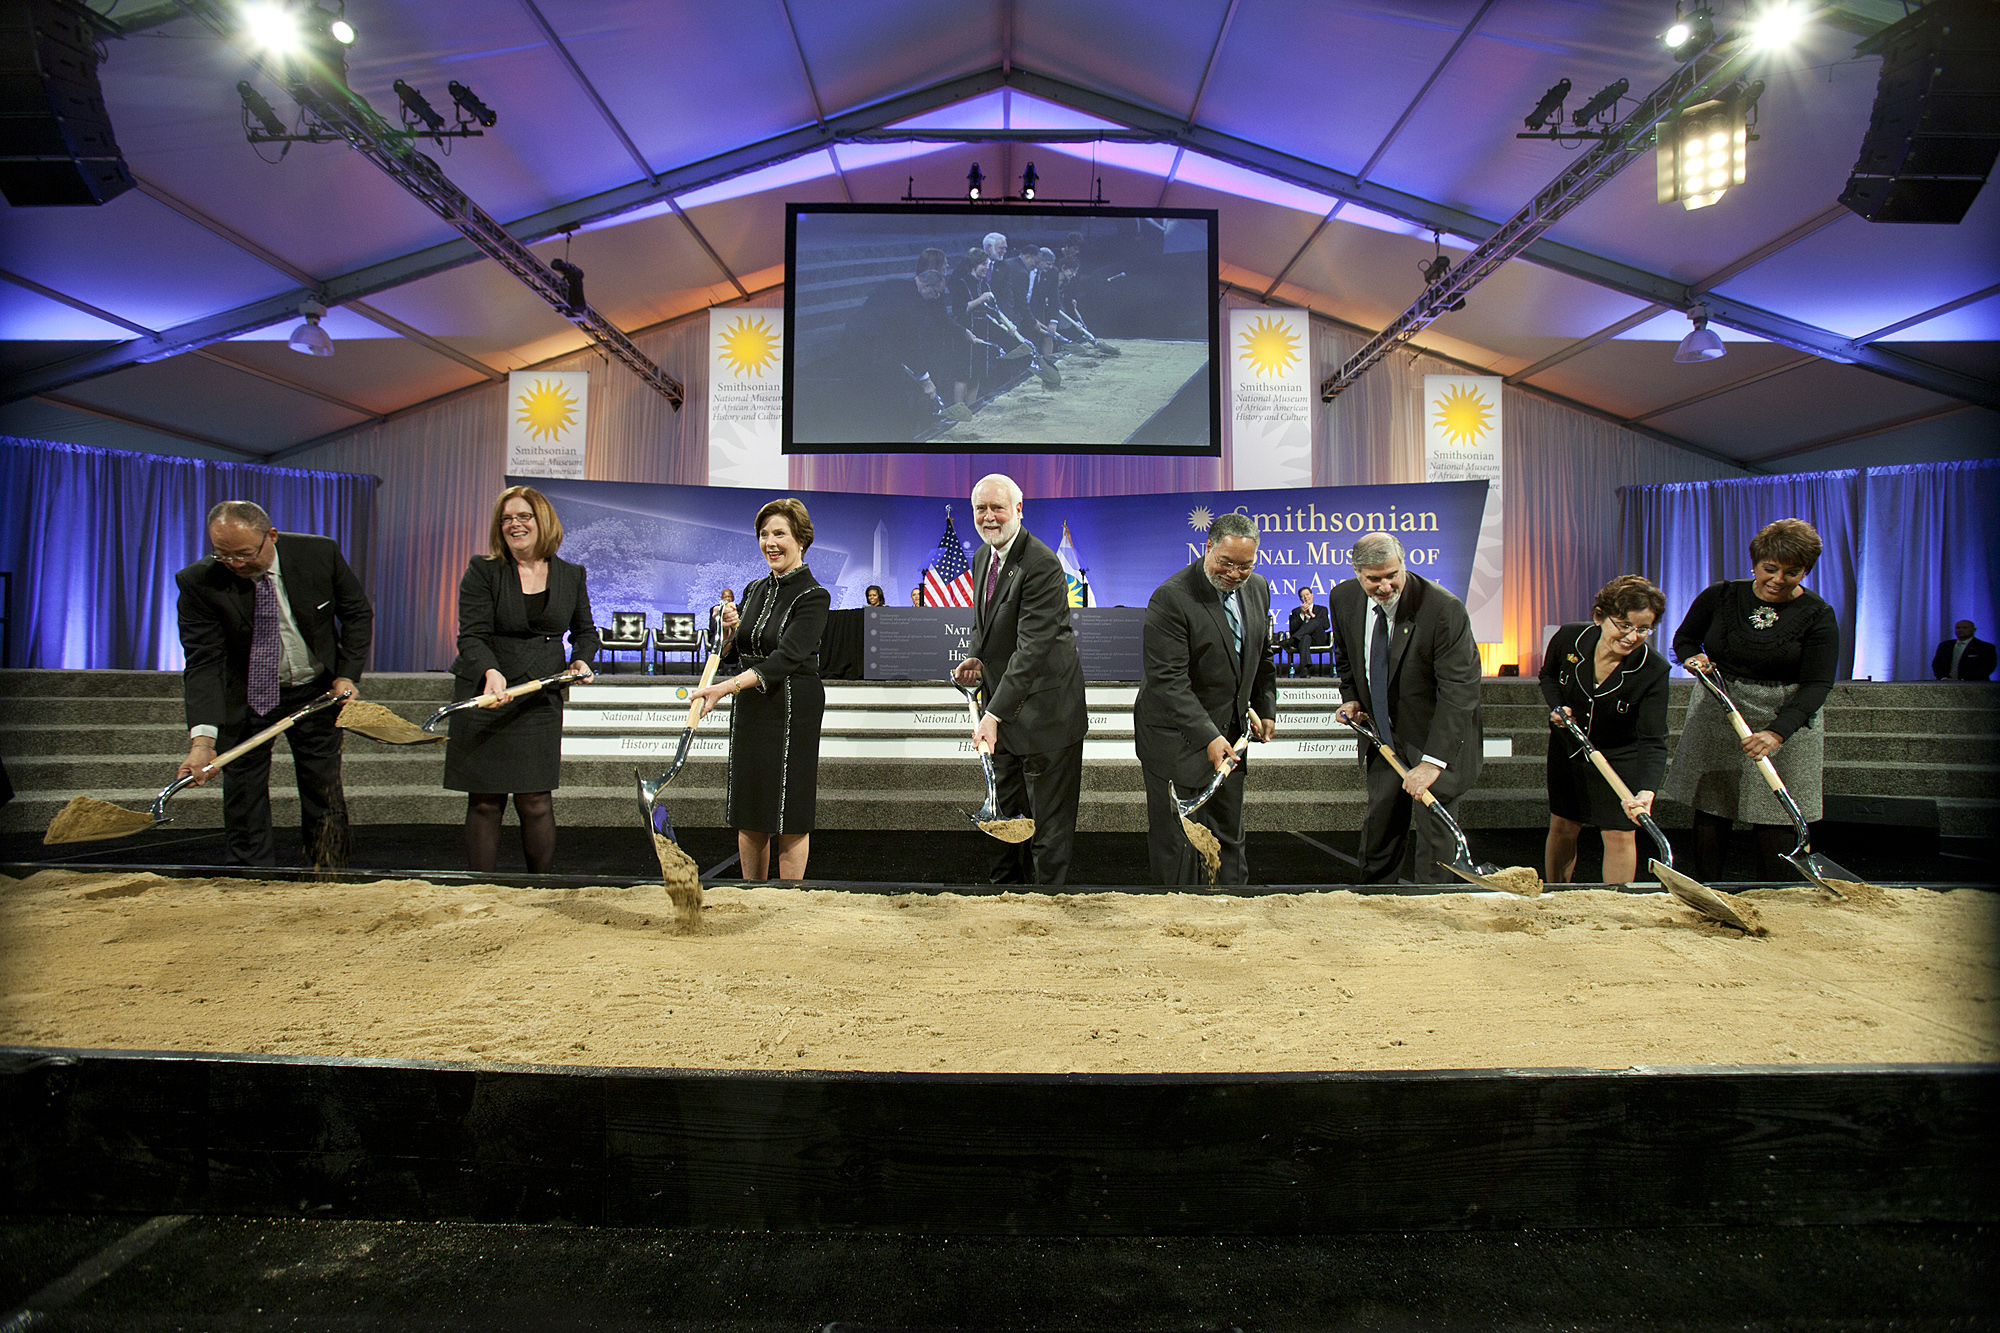 Nmaahc Ground Breaking Smithsonian Institution